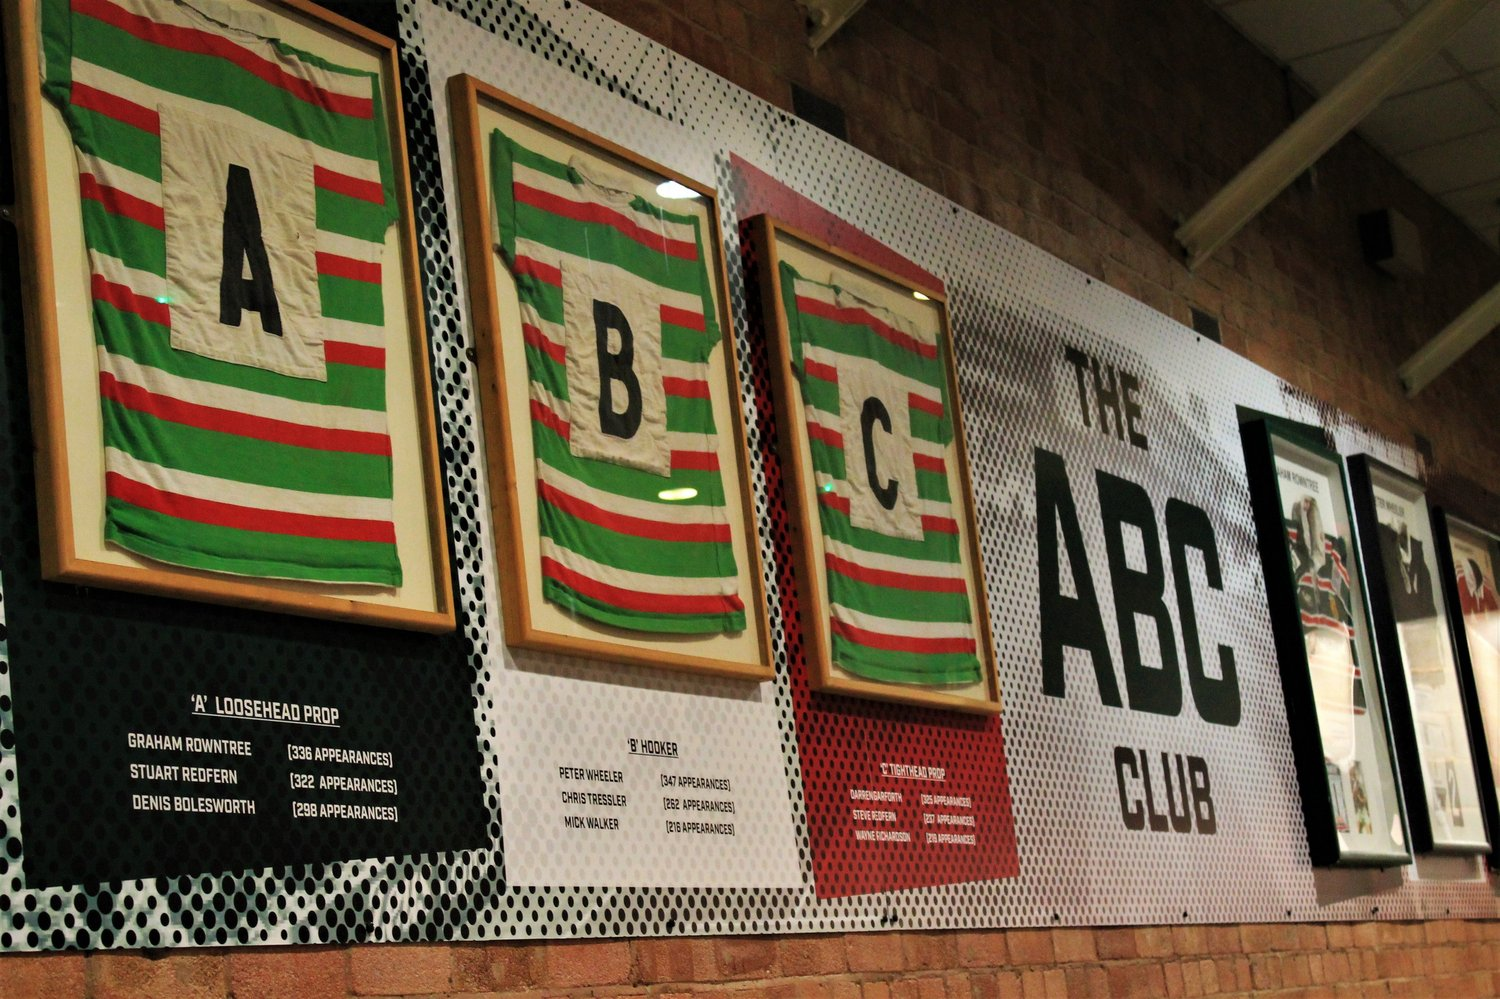 ABC Welford Road